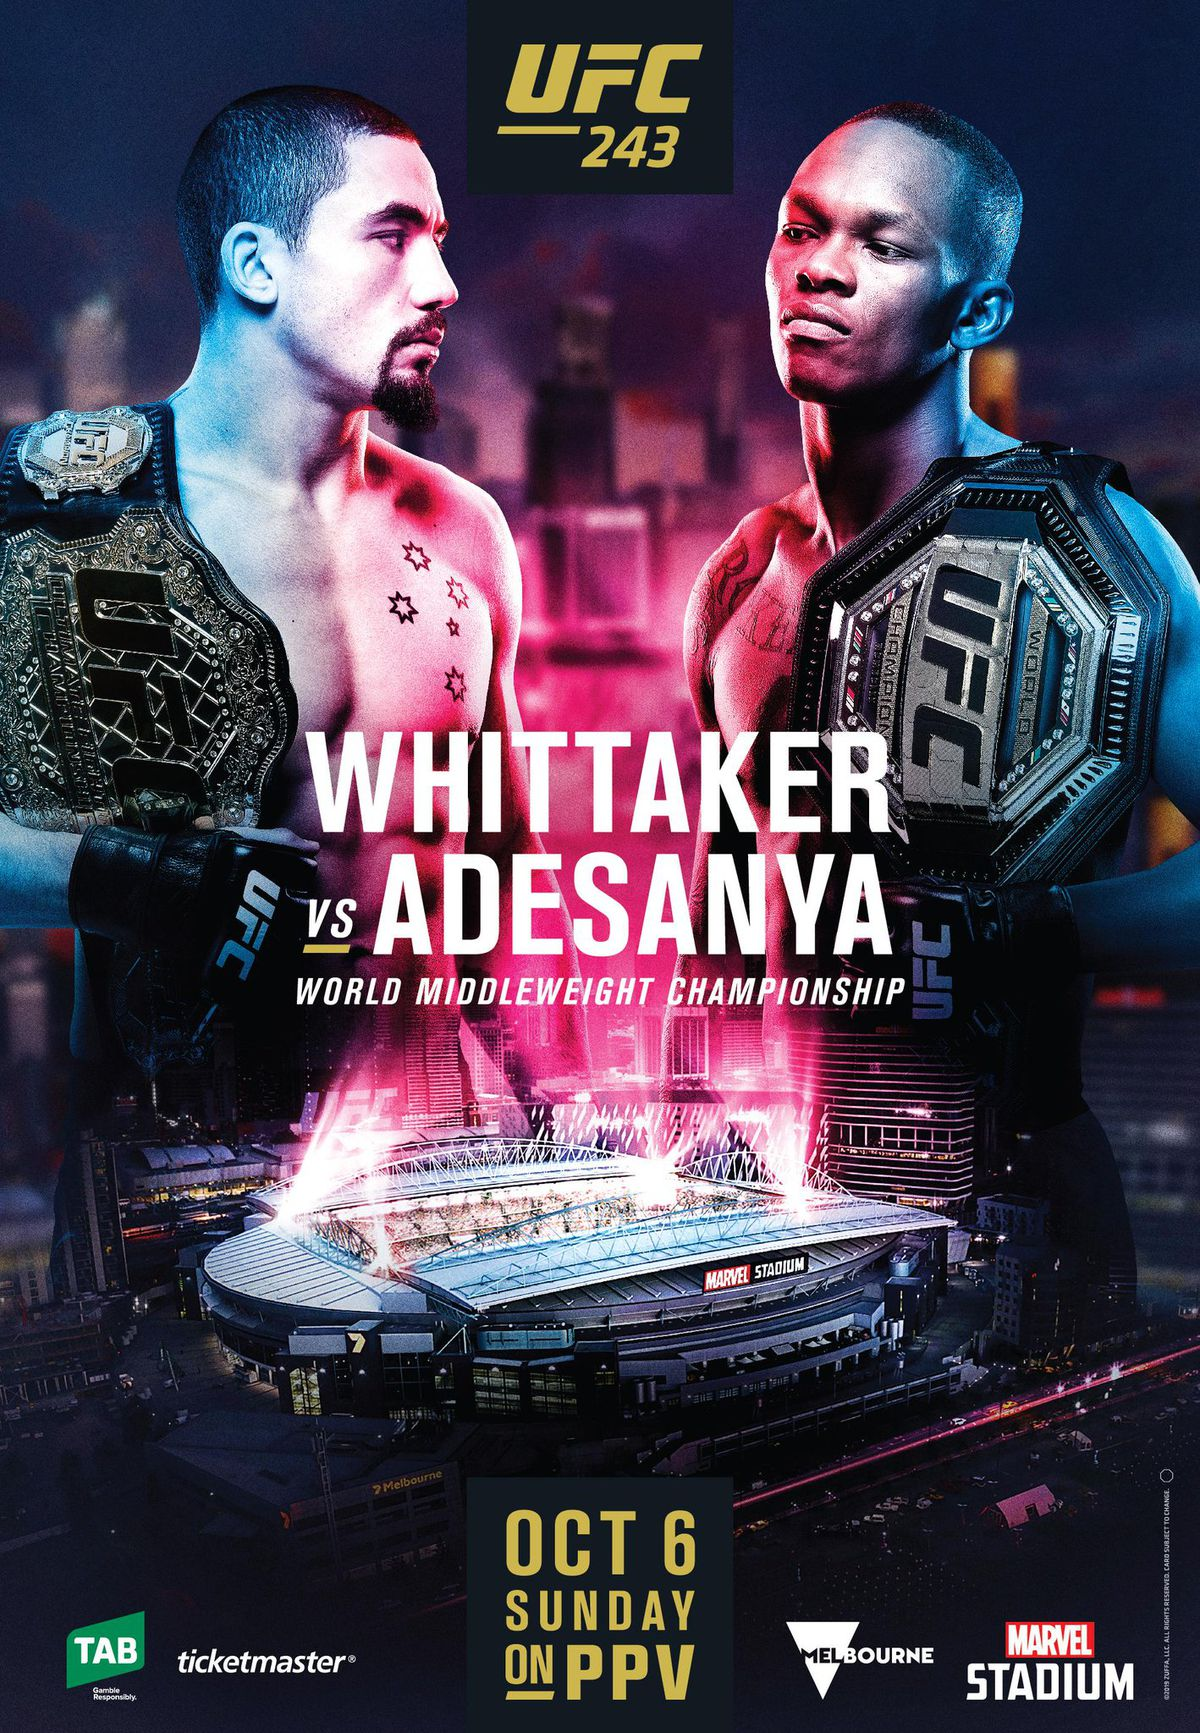 Pic: UFC 243 poster drops for 'Whittaker vs Adesanya'